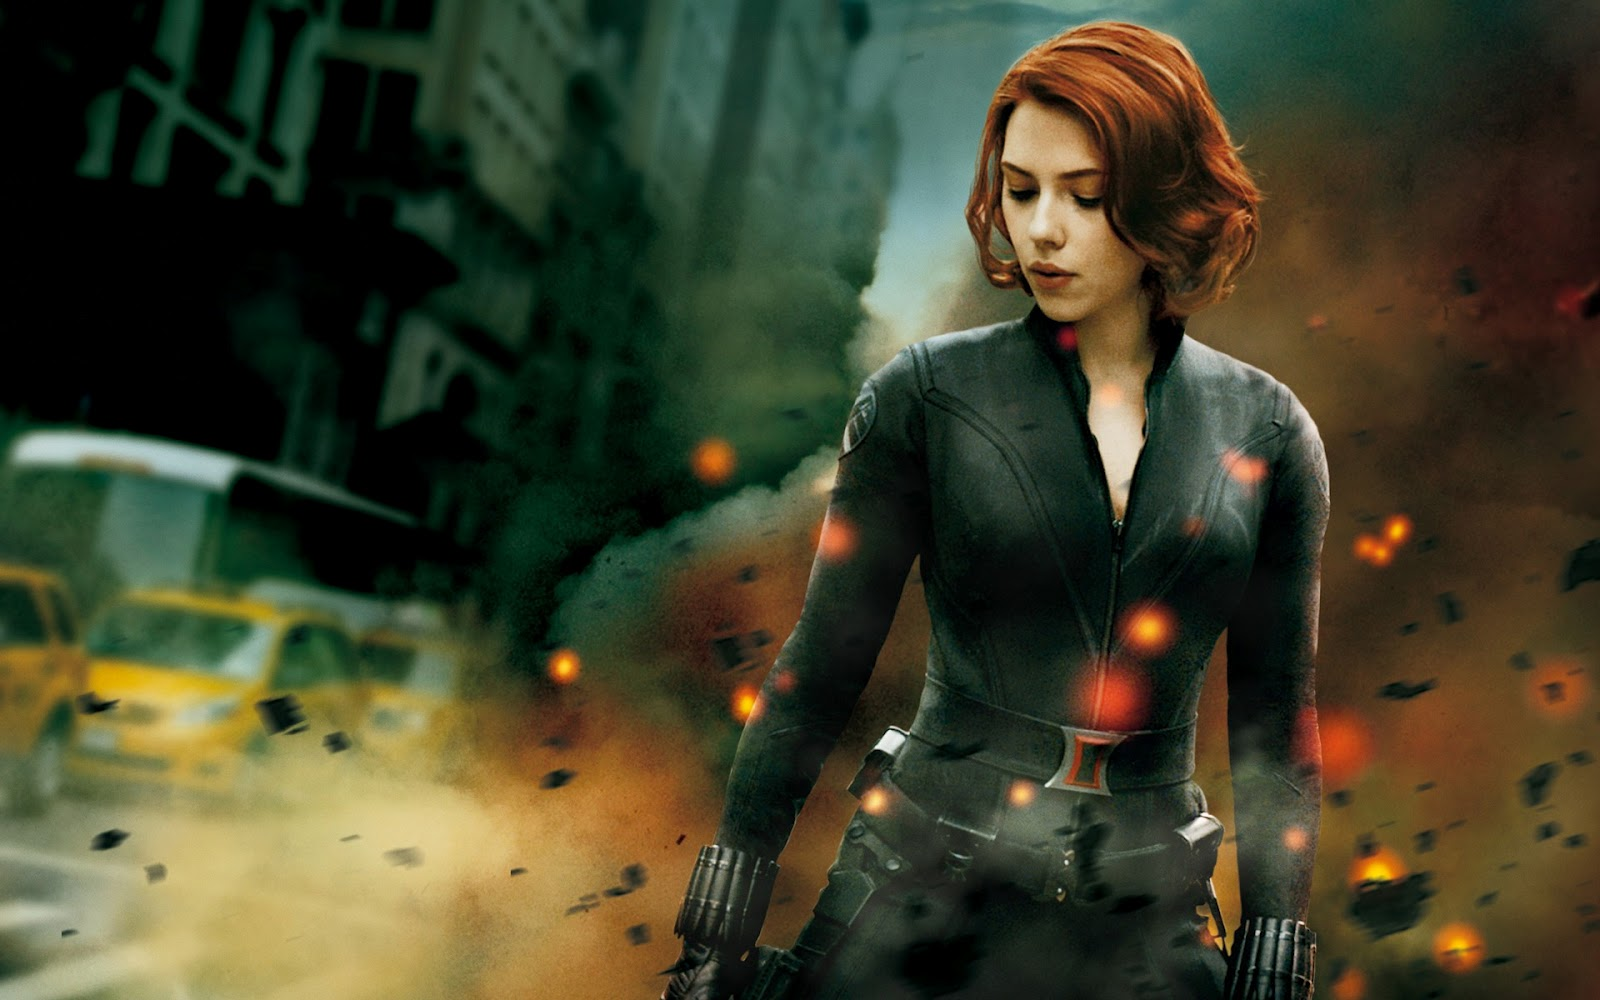 Scarlett johansson black widow wallpaper - photo#4